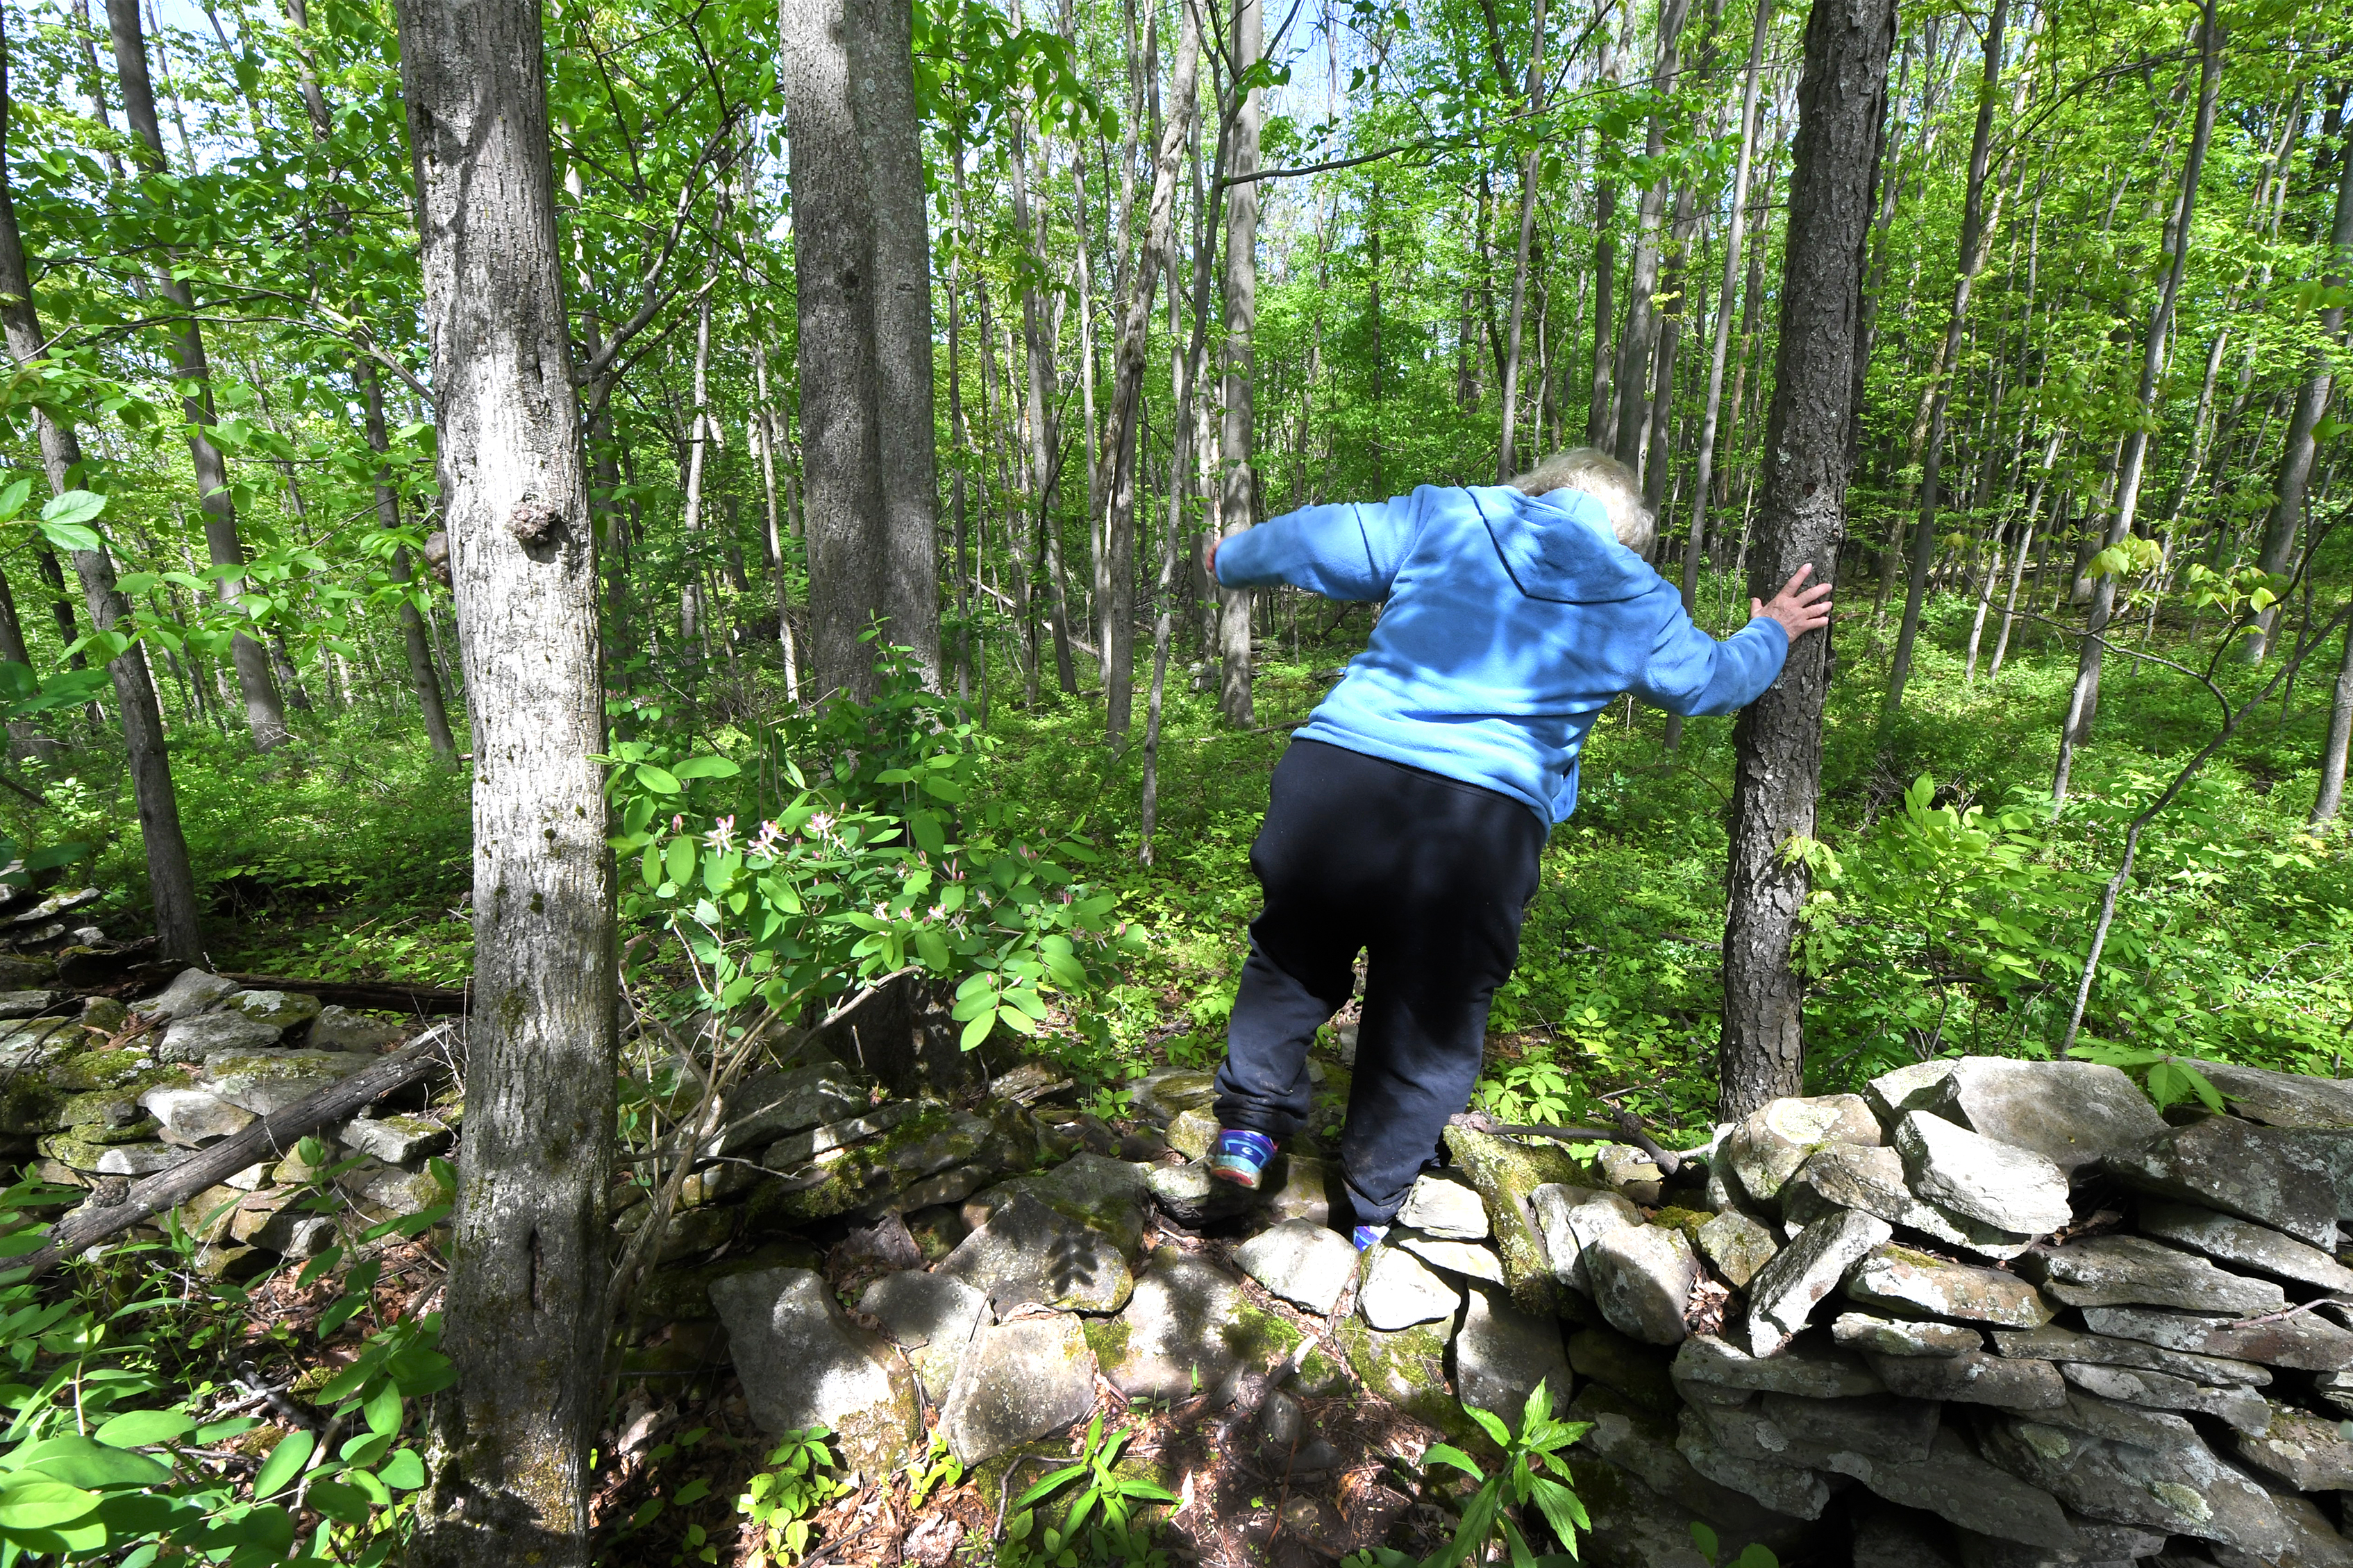 Rose Mary Knick walks over stones and rocks placed in her 90 acre property in Lackawana County, Pa. Monday, May 21, 2018. Several years ago, a family claimed an ancestor was buried on Rose Mary Knick´s 90 acre property in Lackawana County. That family went to council members in Scott Township to see about access and their decision is what led to Knick´s case being accepted by the U.S. Supreme Court. Scott Township ordered Knick to open up her land to this family and therefore everyone without, according to her attorneys, any compensation. The family has not proven their loved one is buried there either. JOSE F. MORENO / Staff Photographer